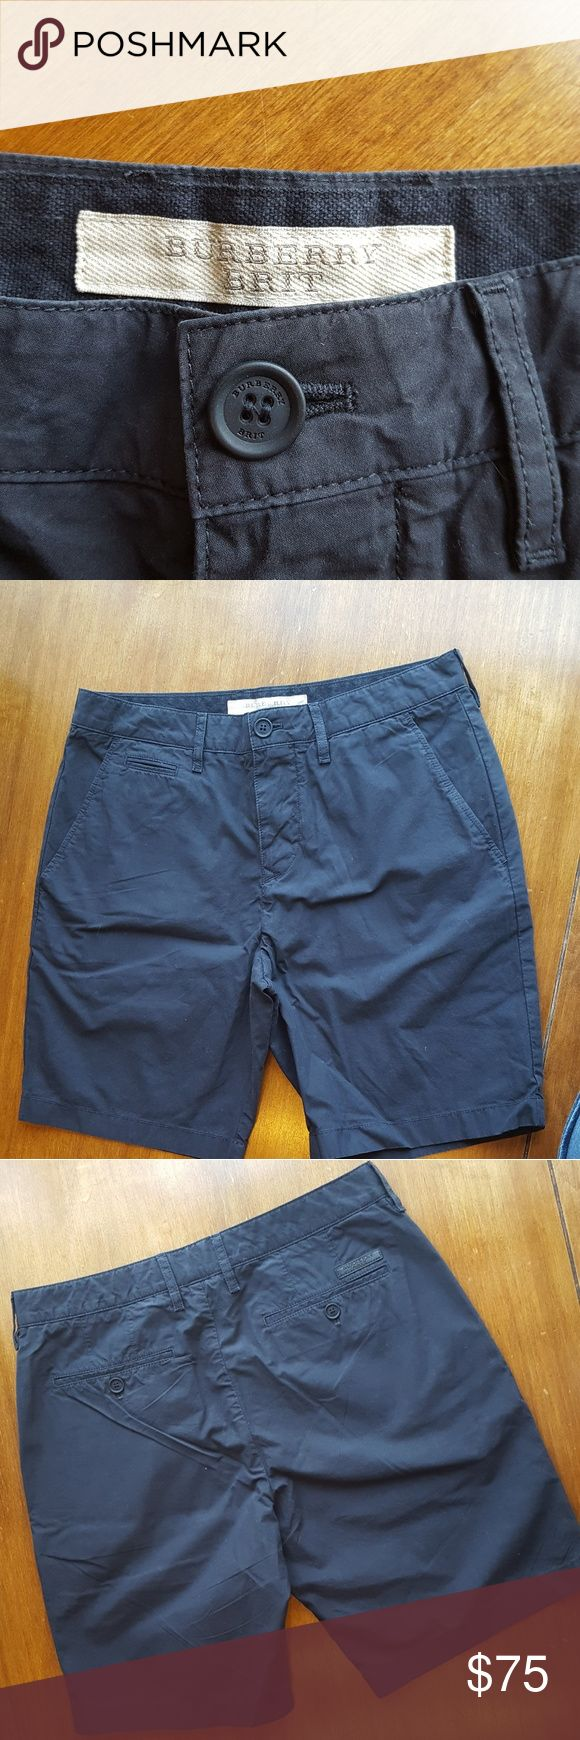 BURBERRY navy khaki shorts Size 28 Burberry Brit navy shorts in like new condition. BURBERRY Shorts Flat Front